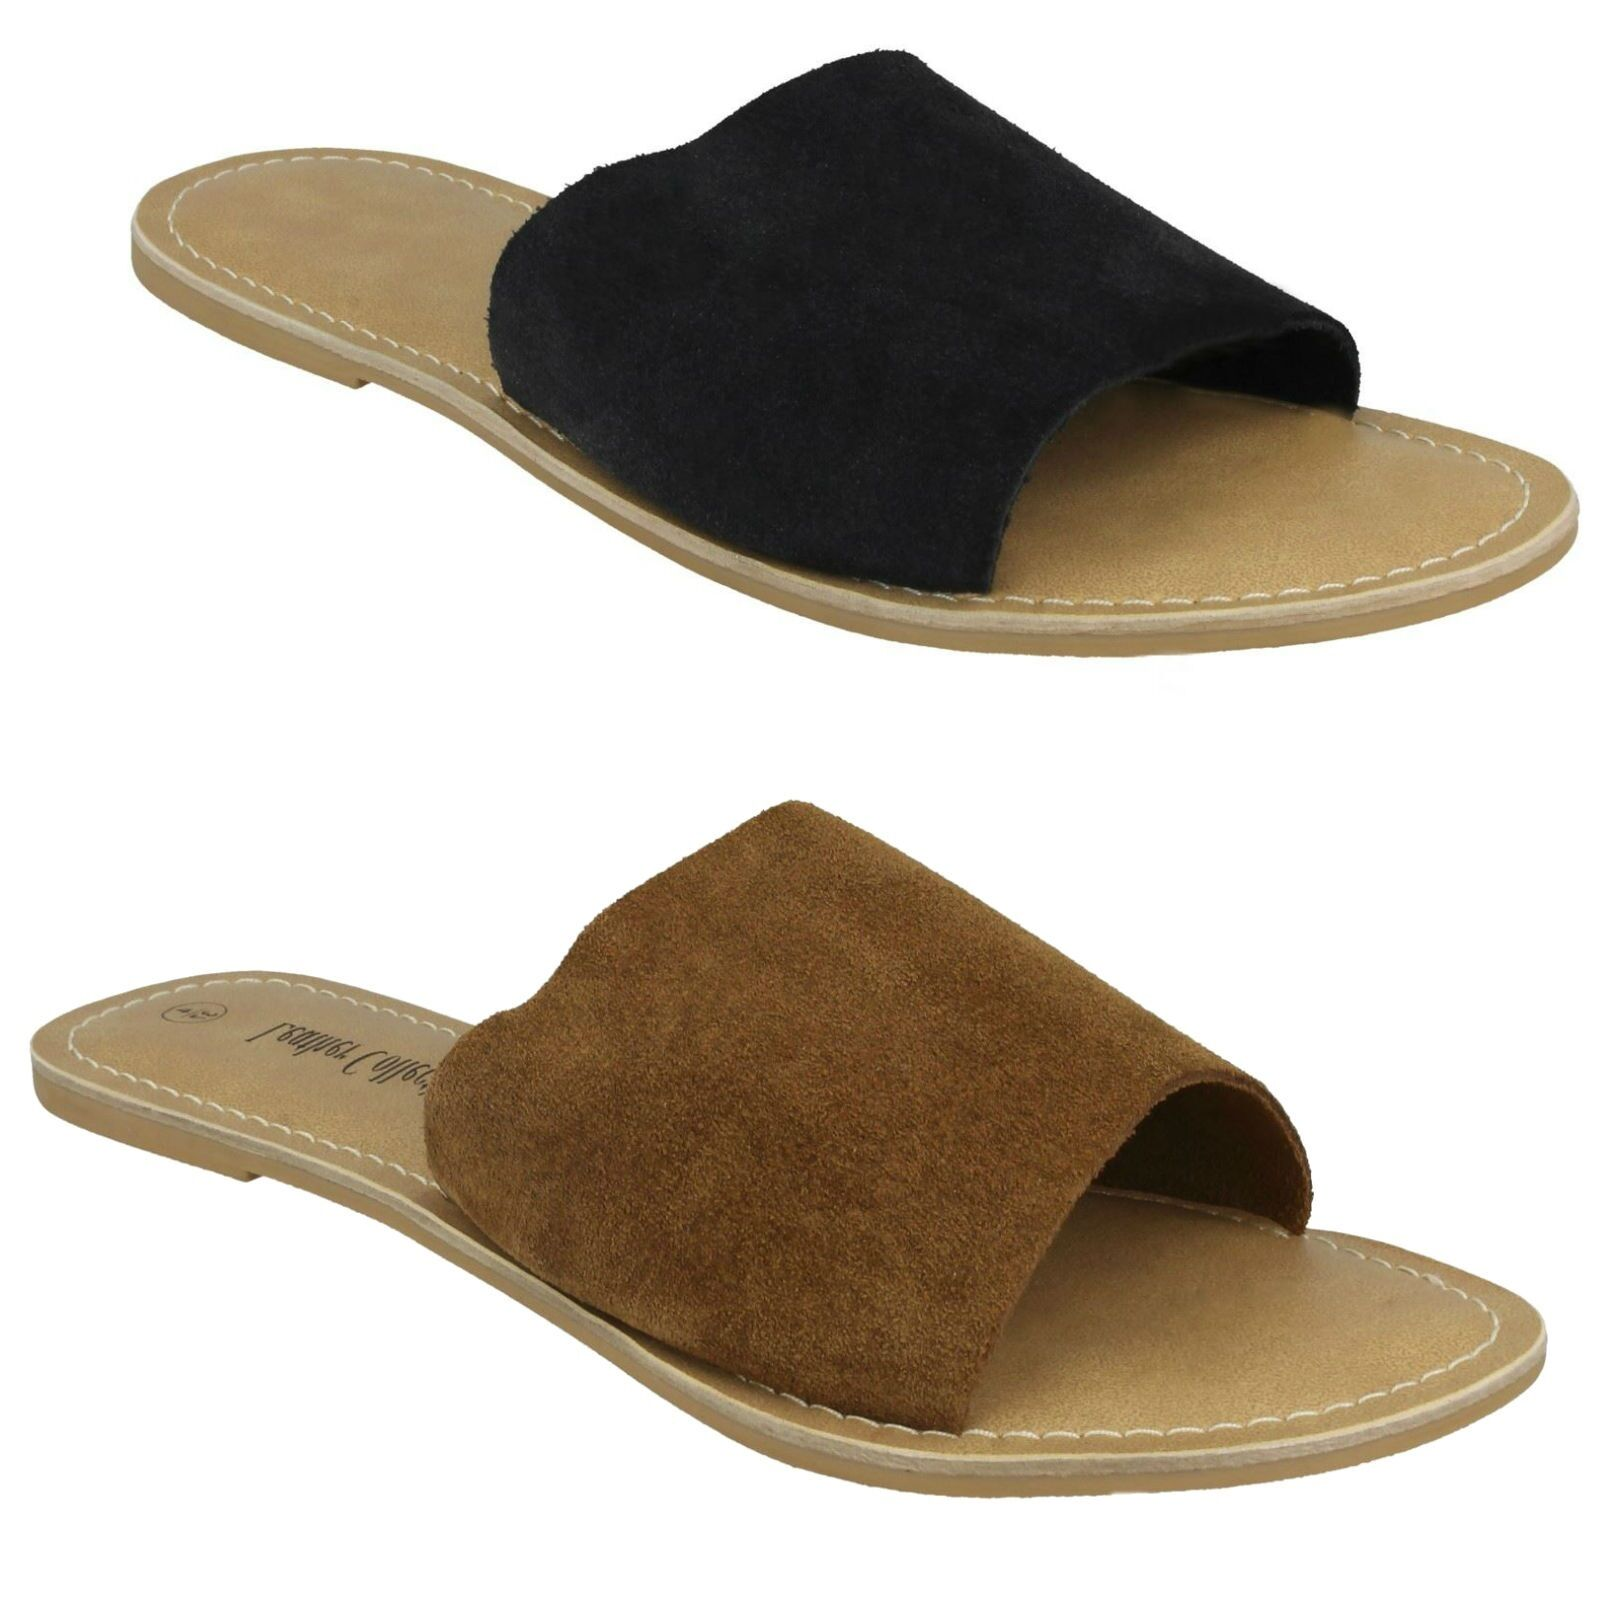 LADIES ON WOMENS LEATHER COLLECTION SLIP ON LADIES CASUAL SUMMER MULES SANDALS F00072 c9cb05